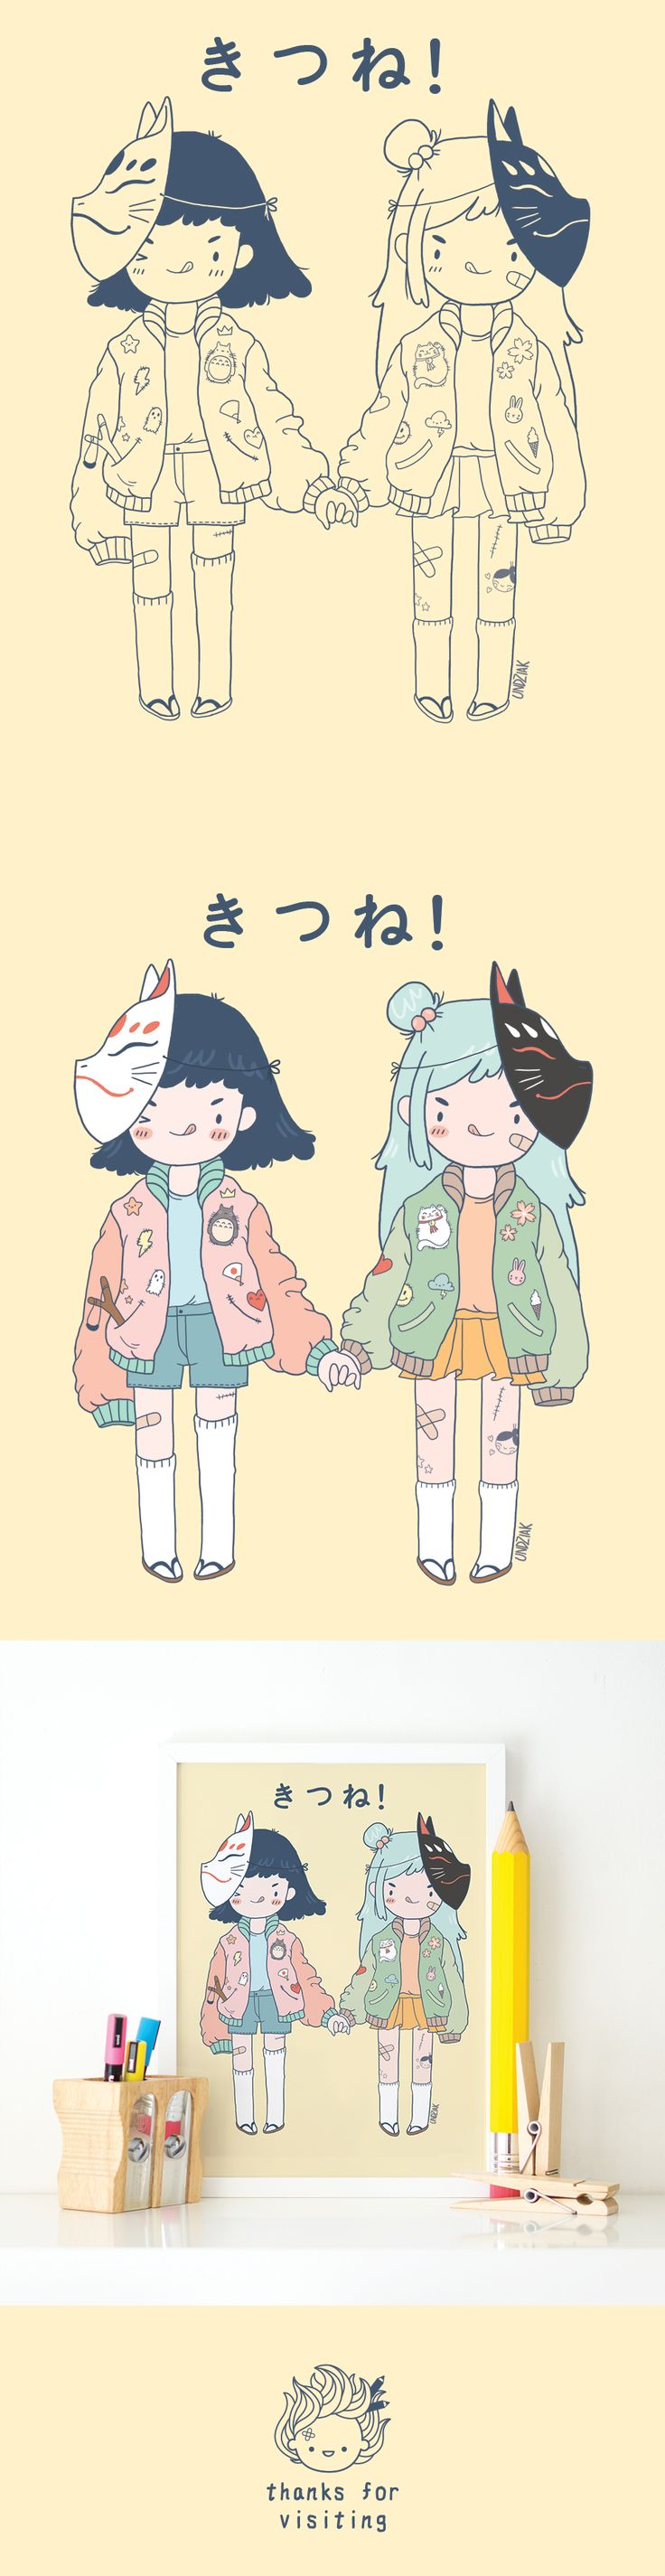 Japanese Grils! - character design on Behance